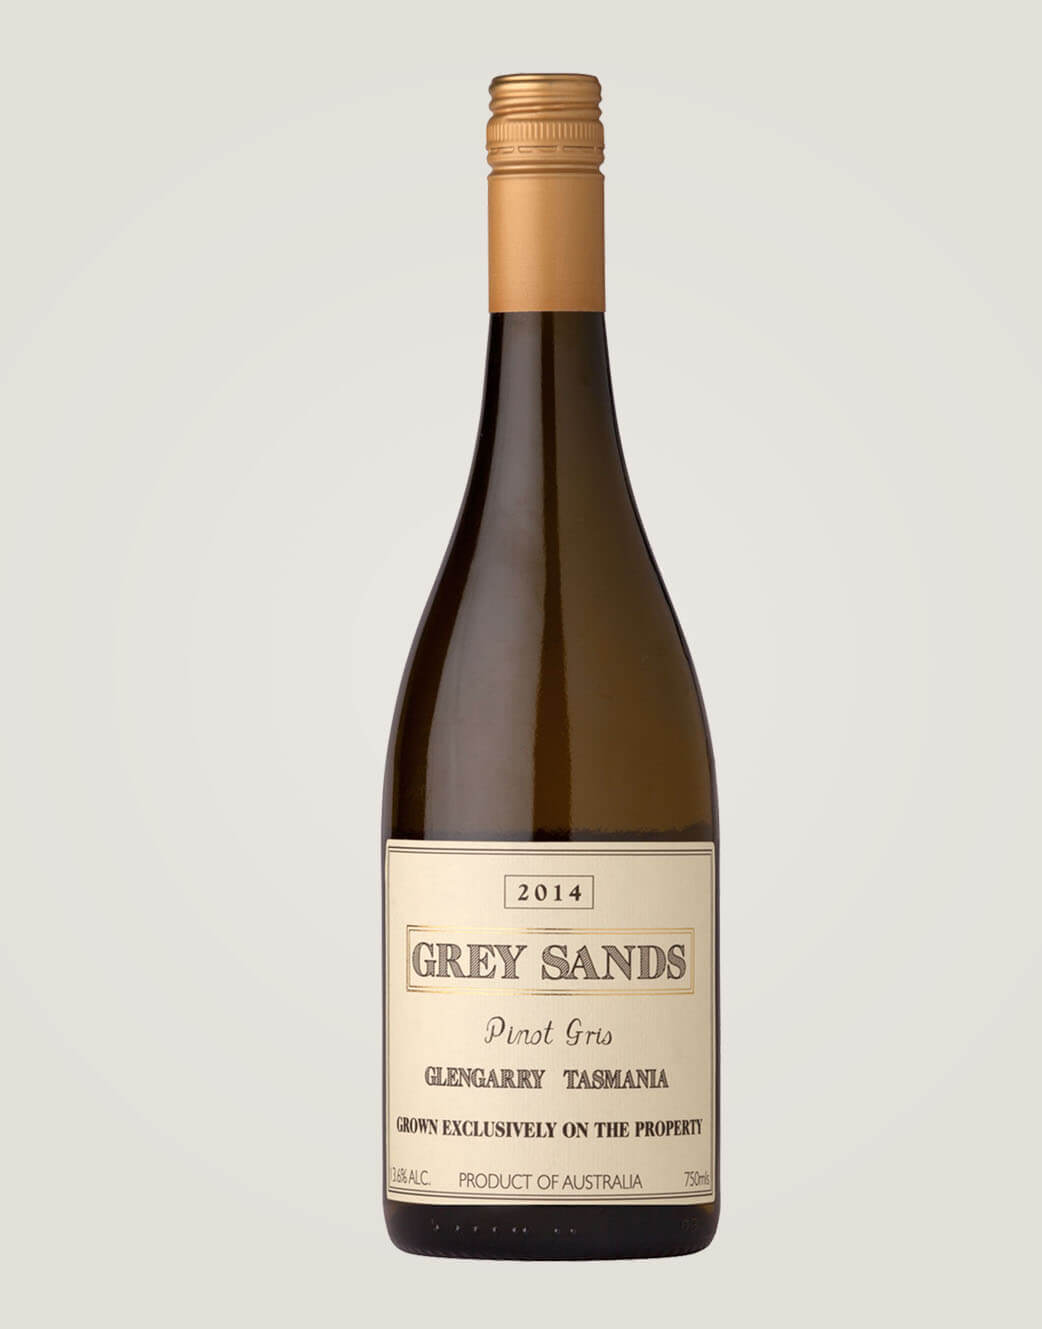 Grey Sands Pinot Gris 2014 bottle